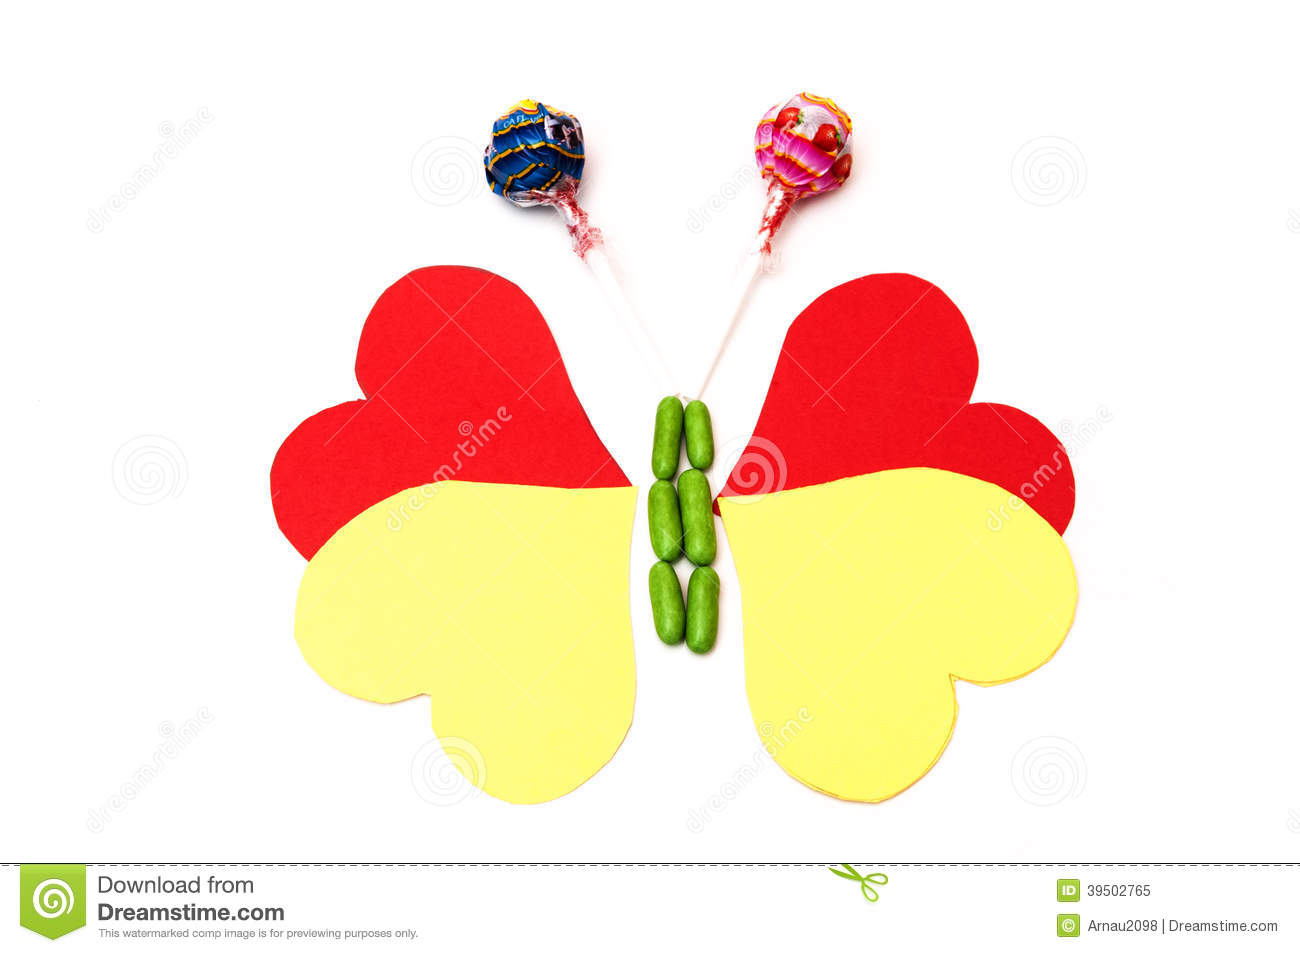 Drawing of a butterfly with hearts and candy